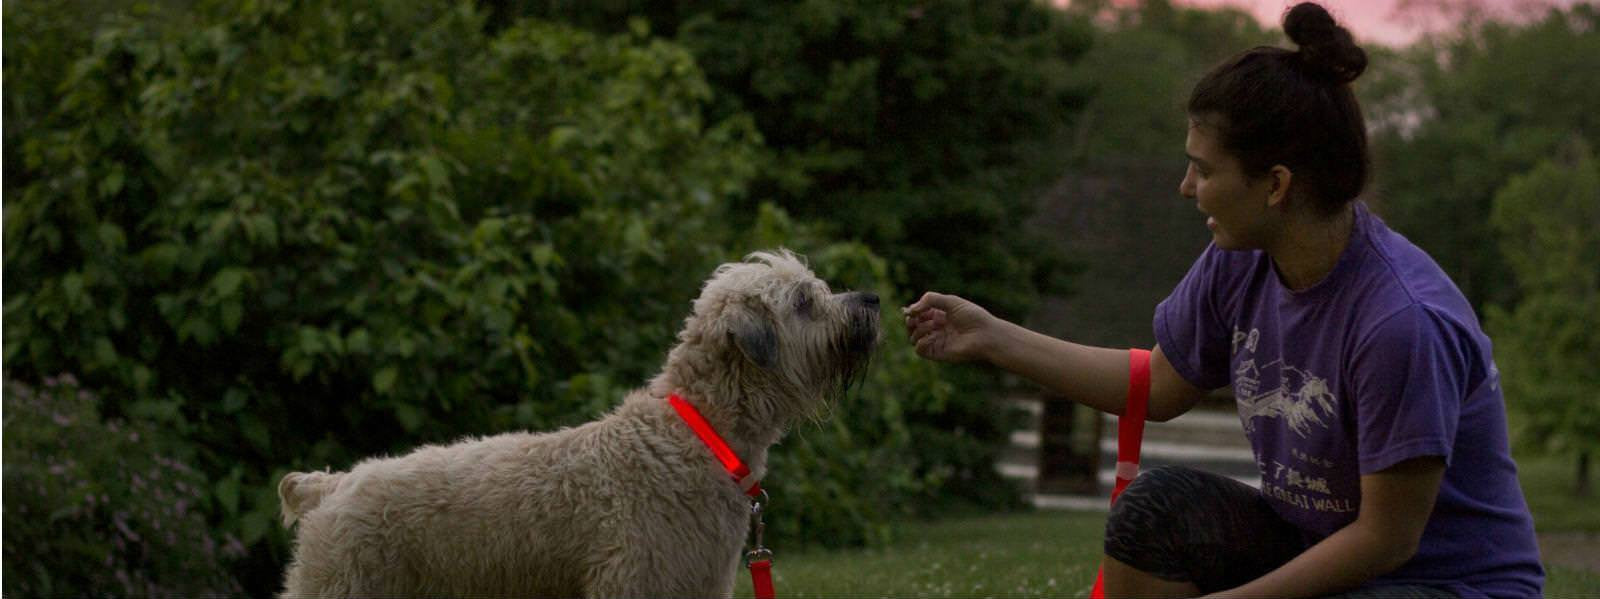 The Pet's Tech Keeps Your Dog Save With Our LED Dog Collar And Leash